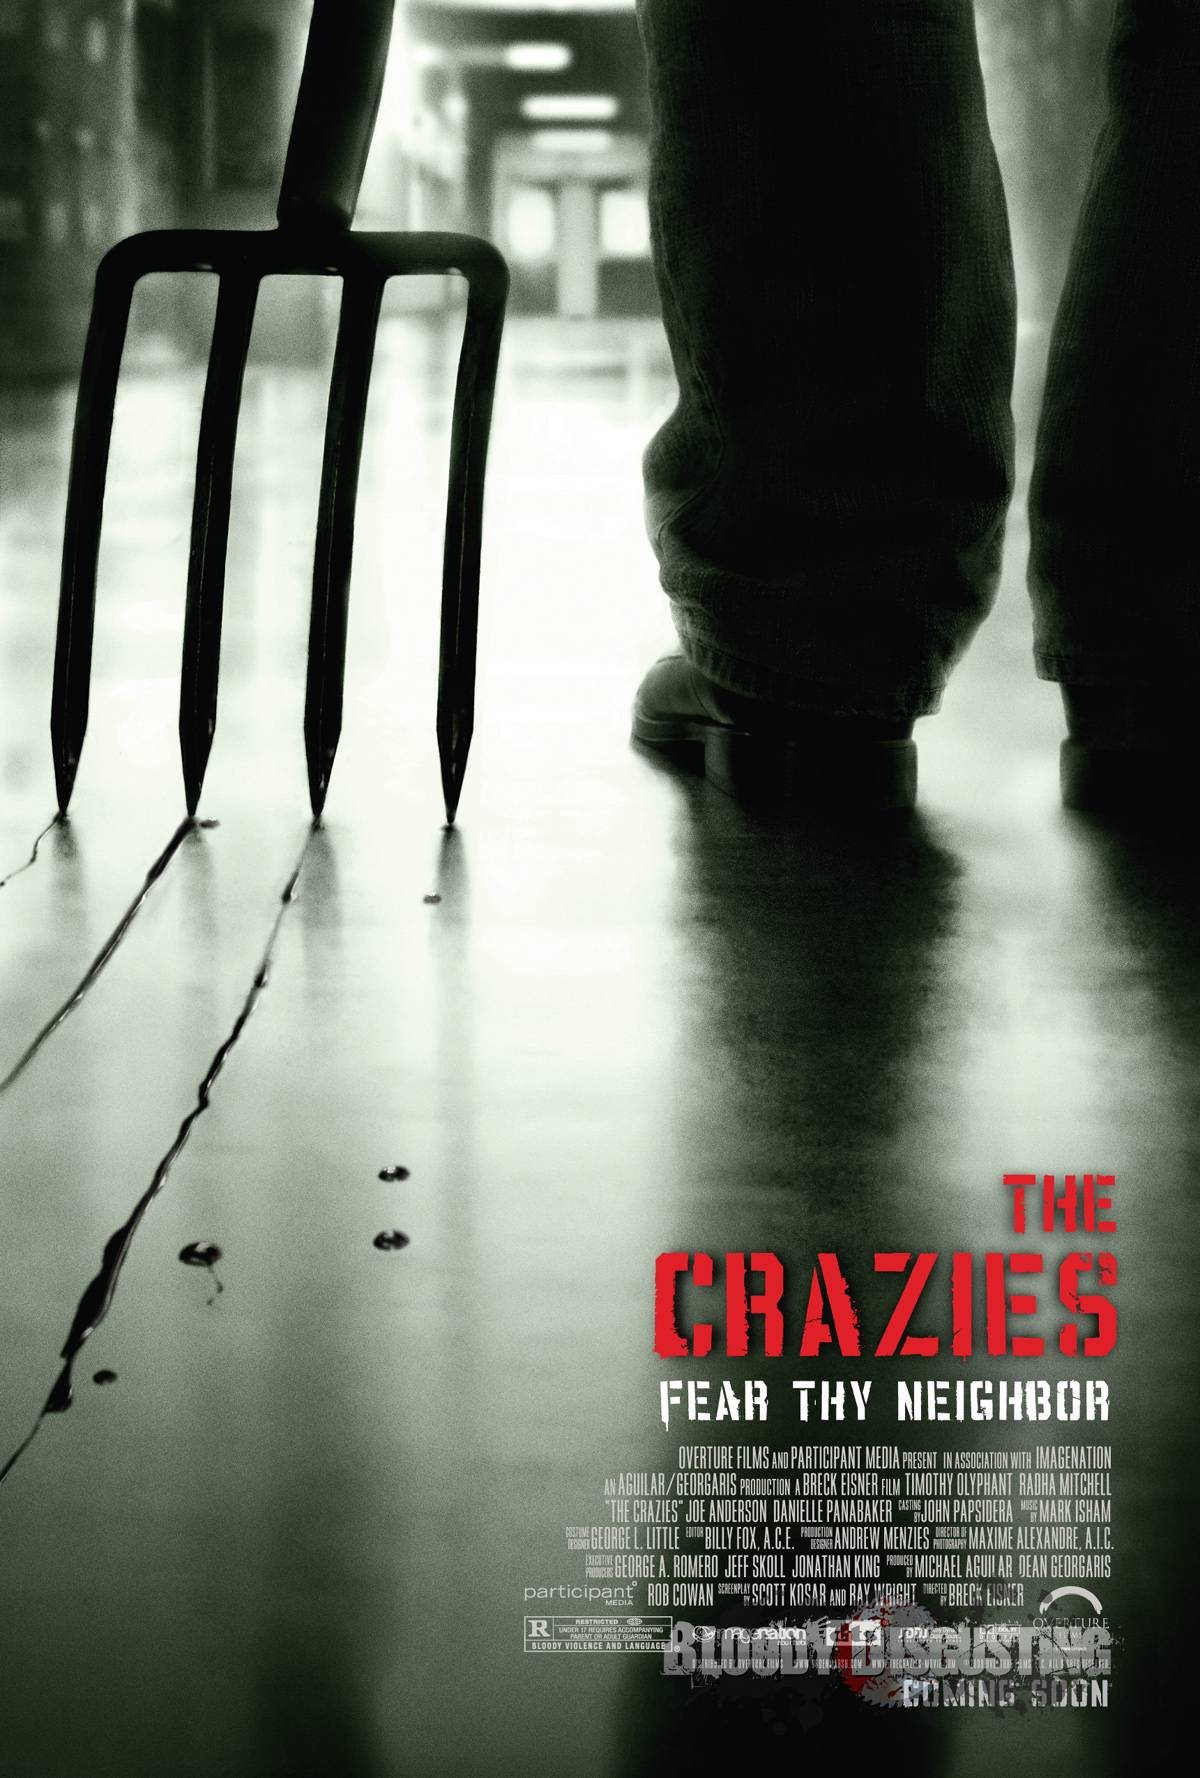 The Crazies: fear thy neighbor